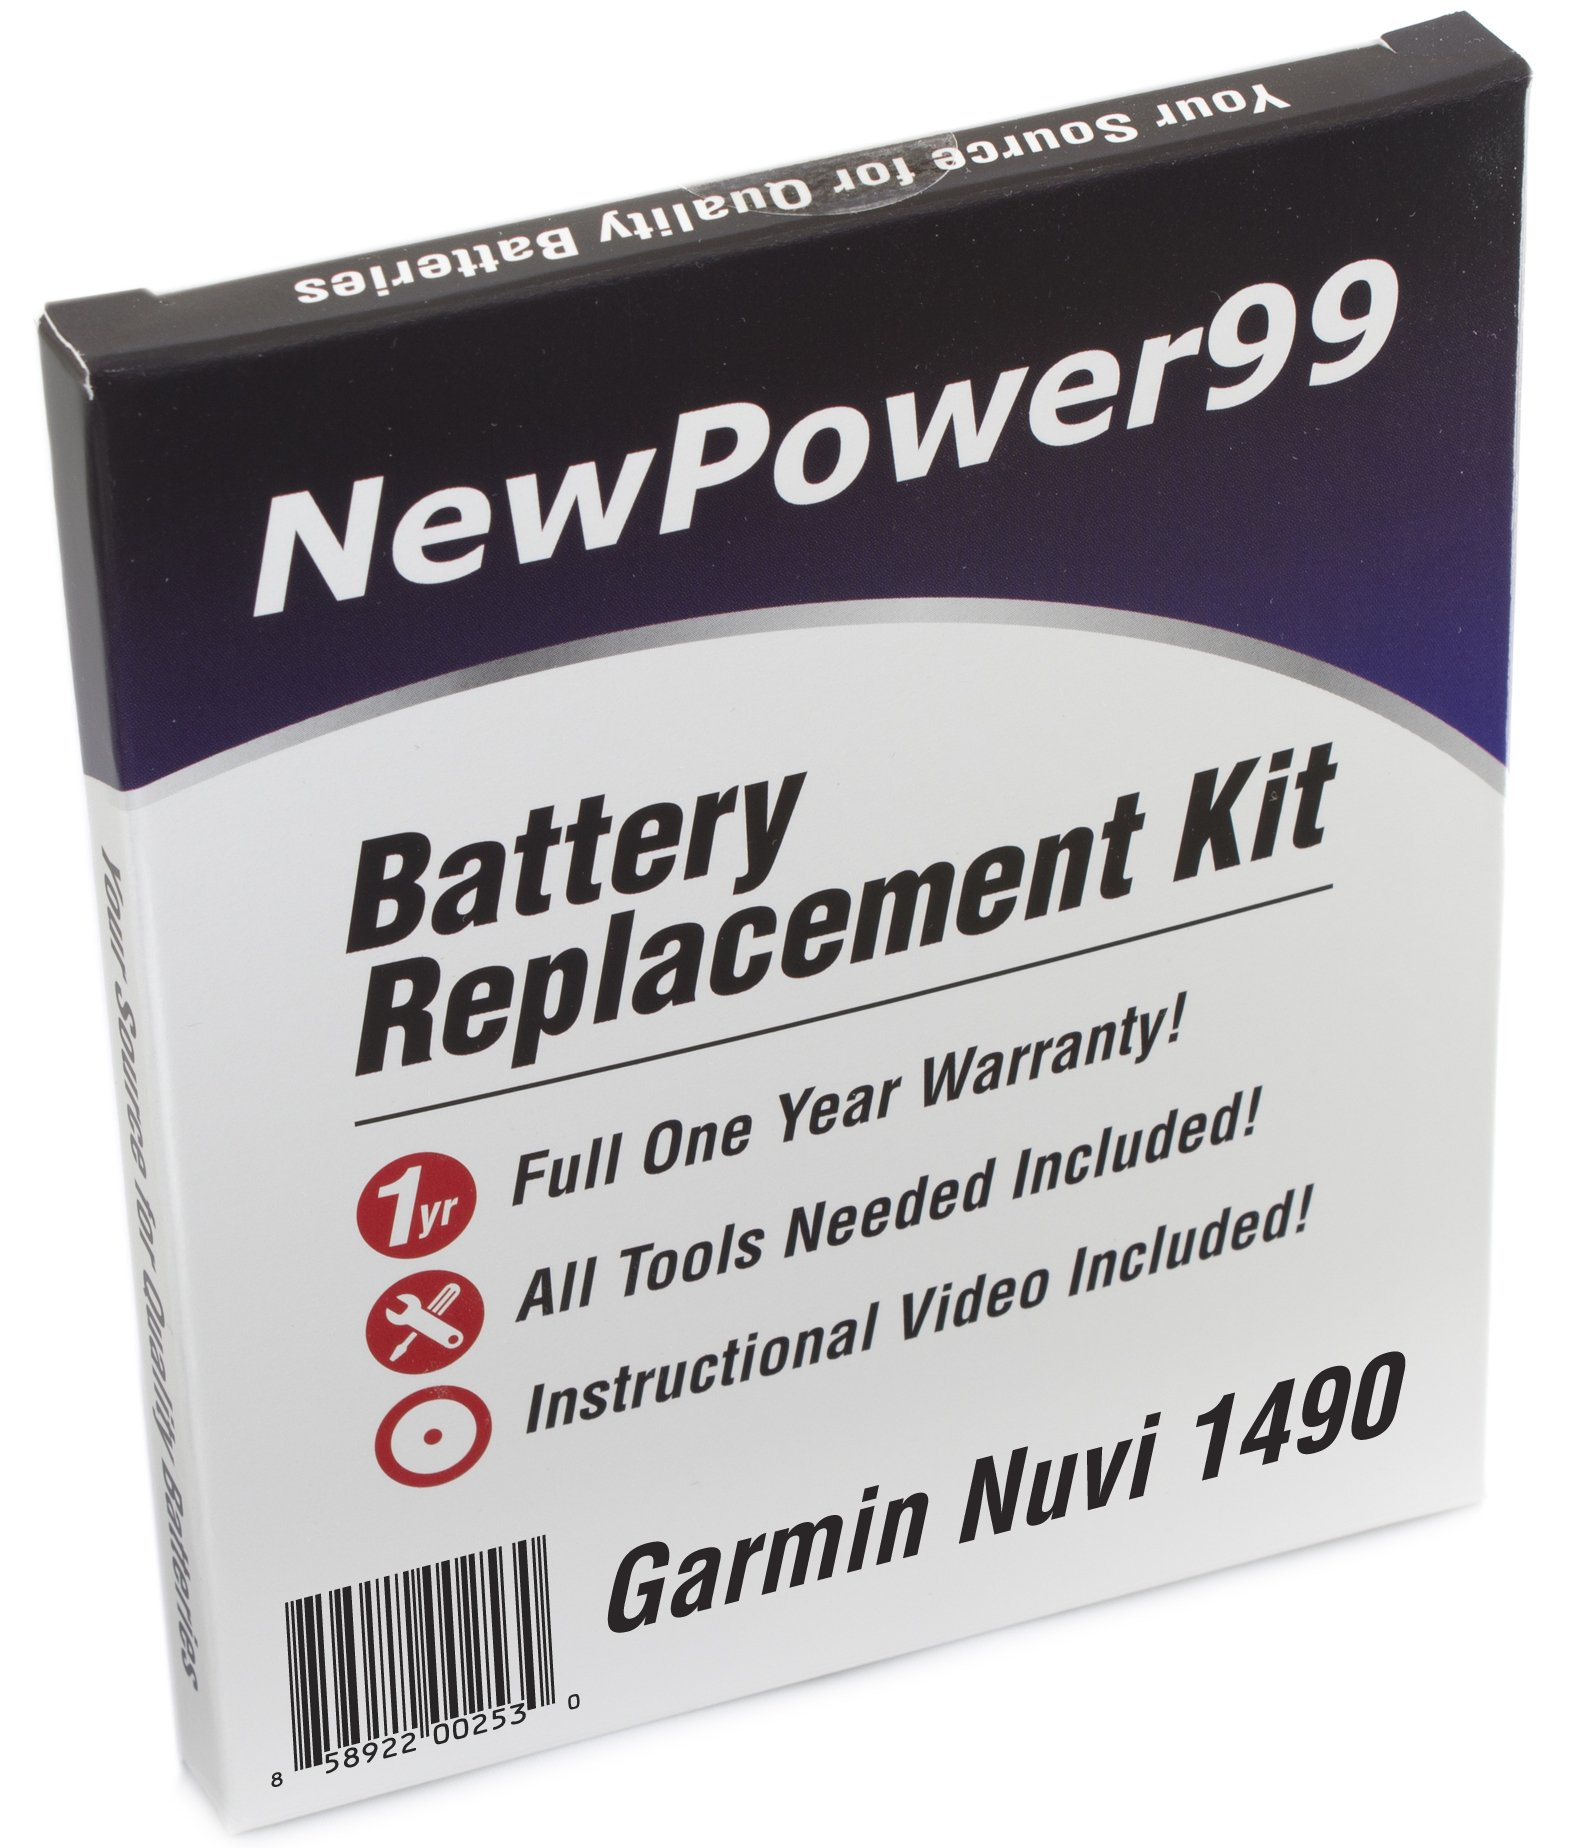 Battery Replacement Kit for Garmin Nuvi 1490 with Installation Video, Tools, and Extended Life Battery.